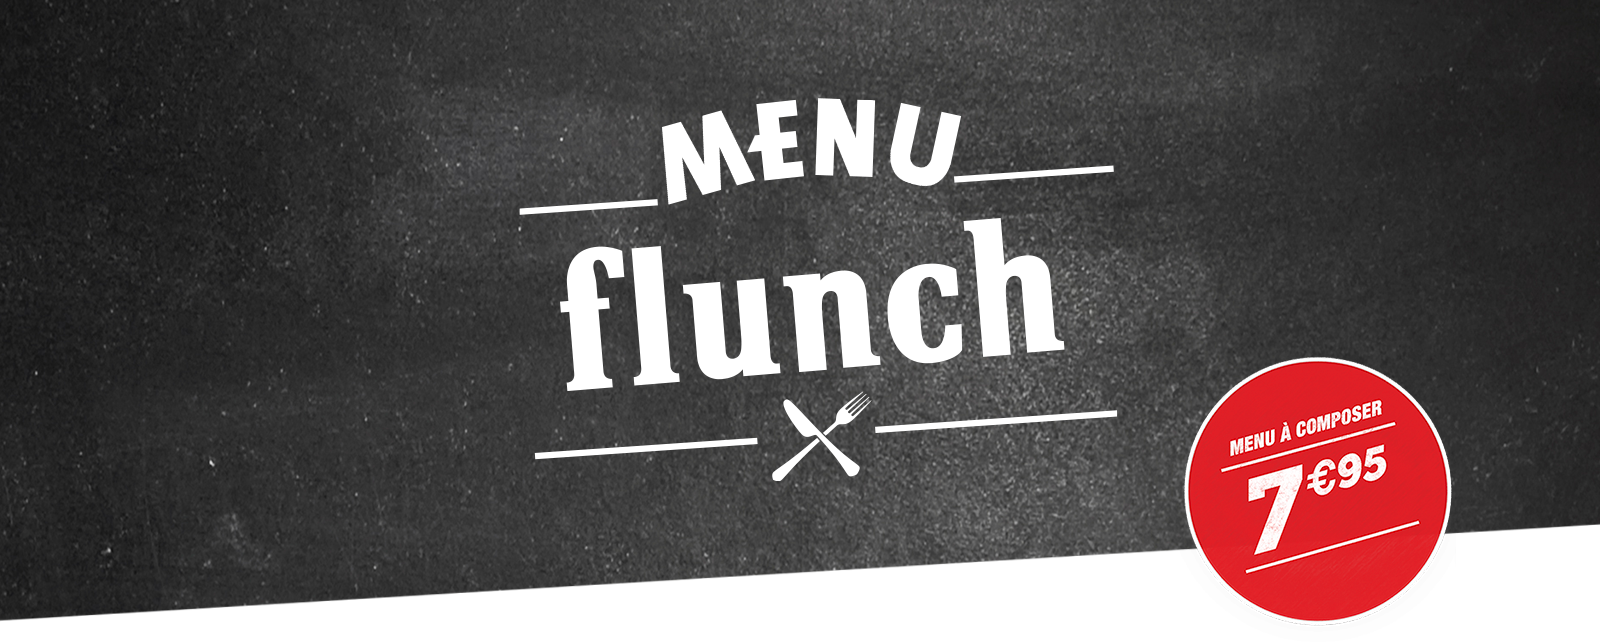 nouveau menu flunch